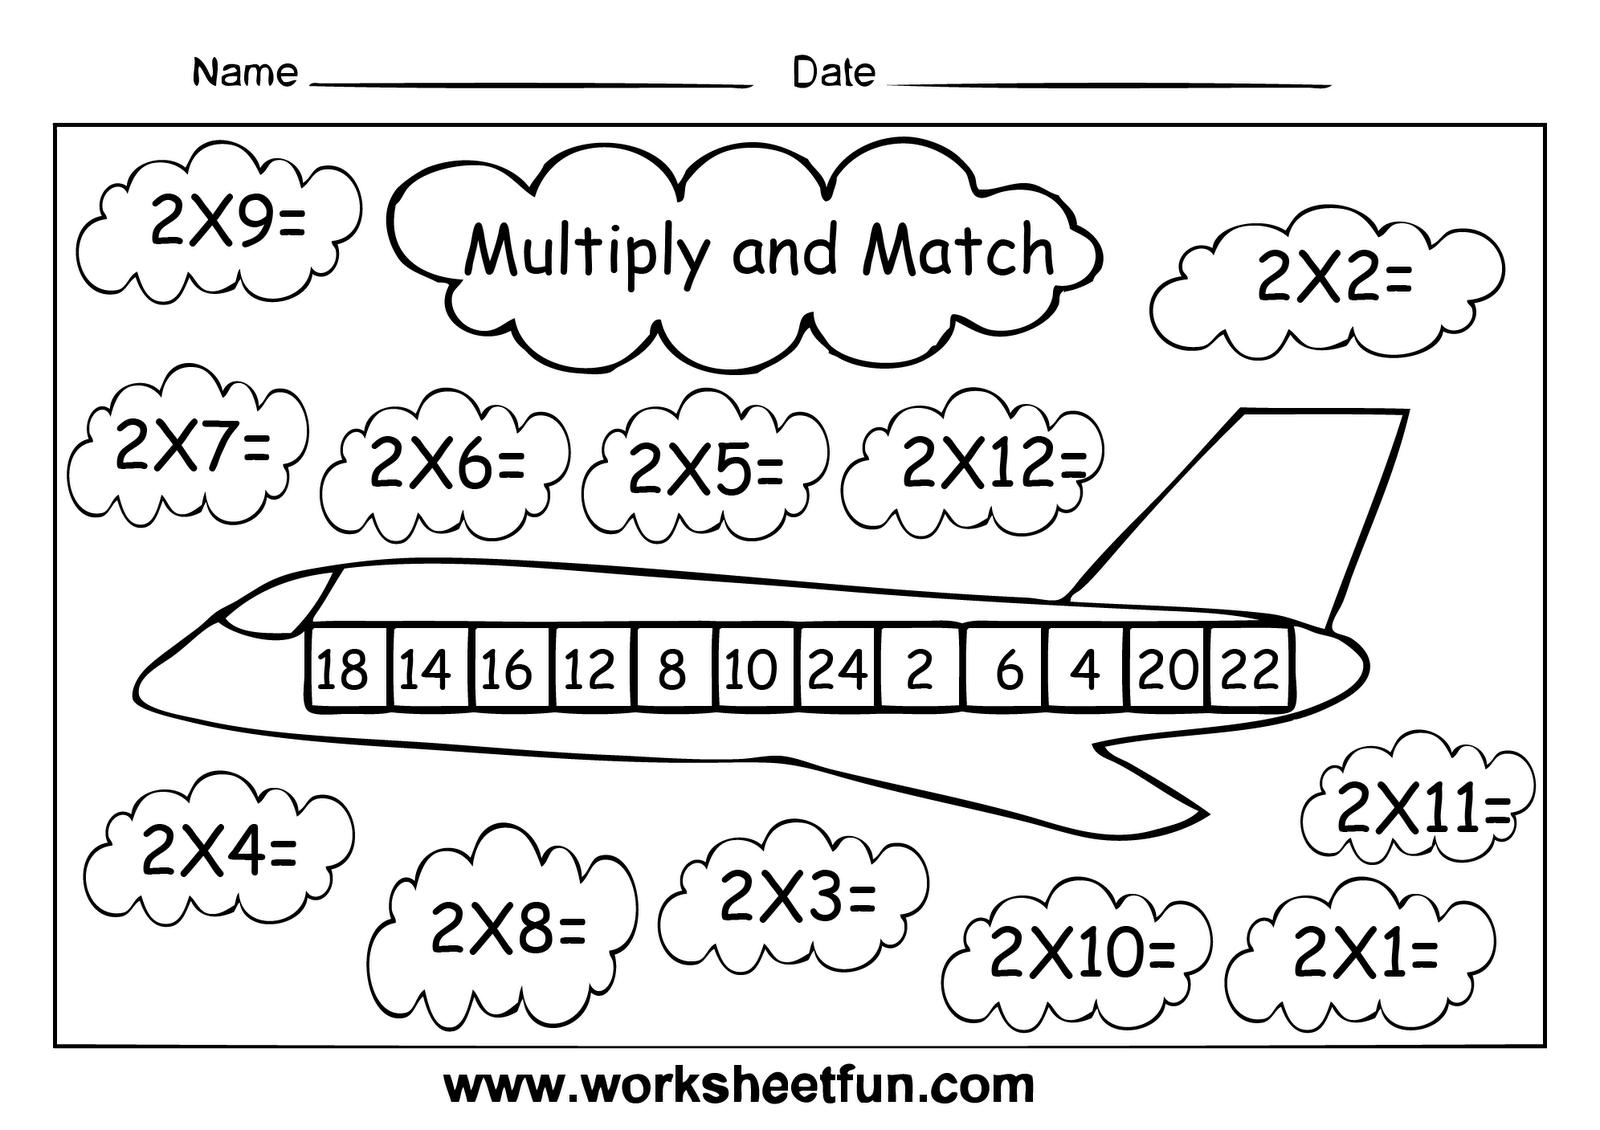 Multiplication Worksheets 2 Times Tables